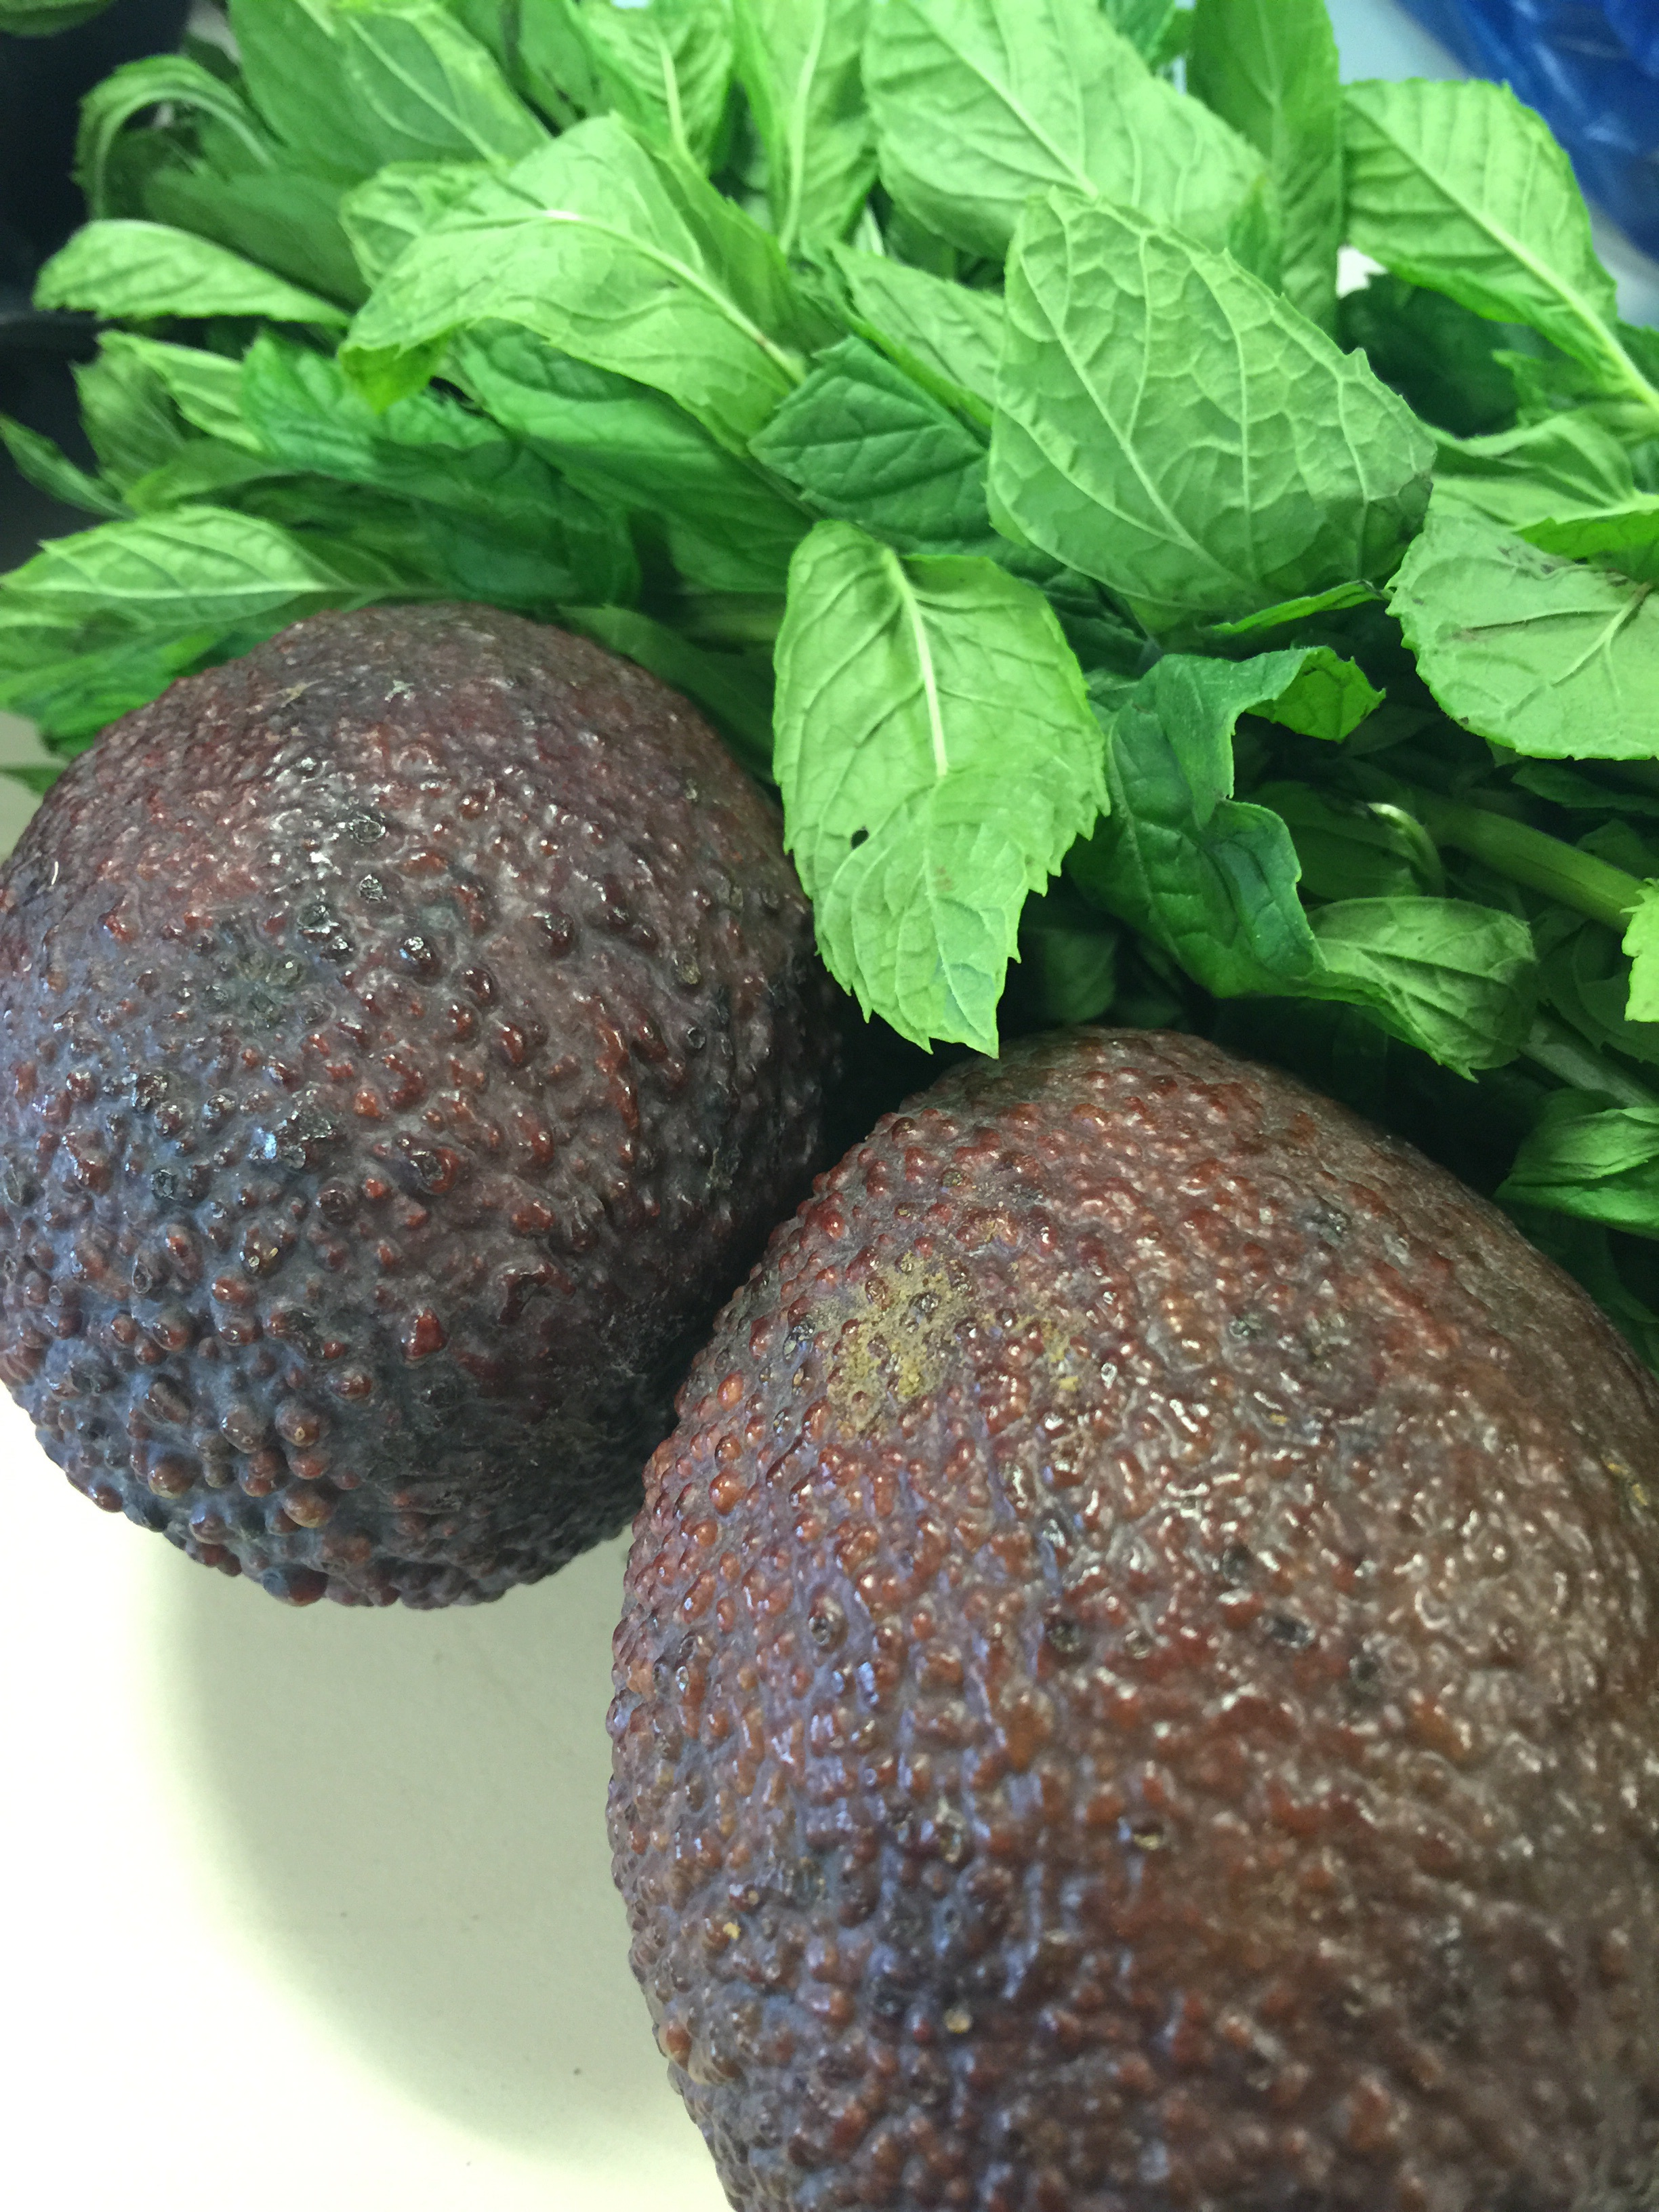 Two ripe avocado and half a bunch of fresh mint